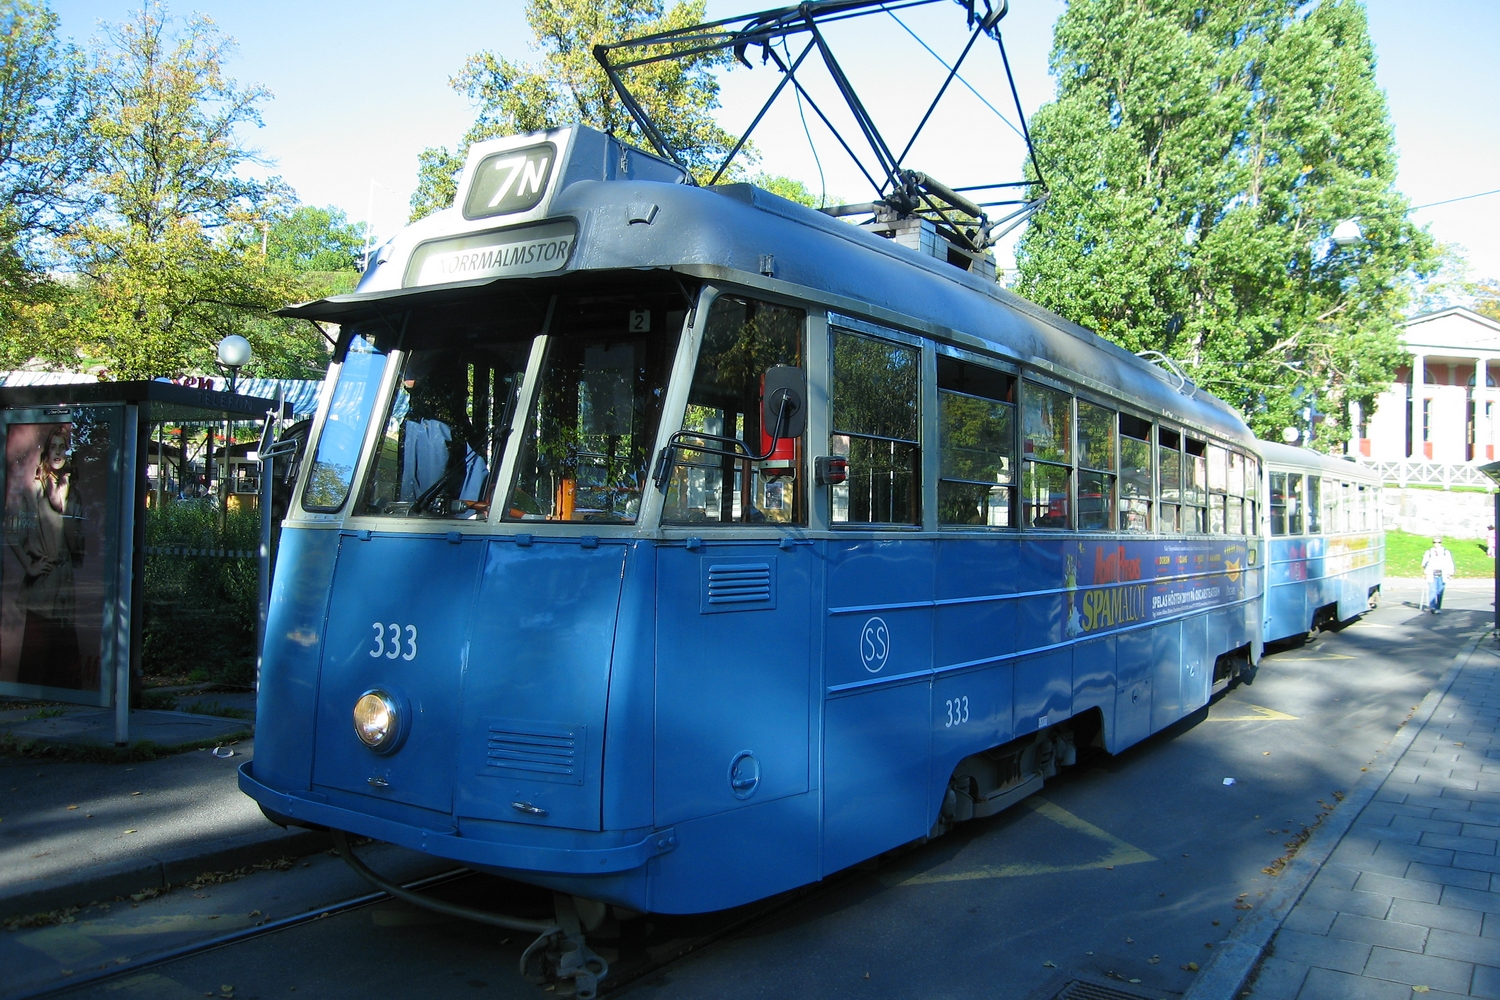 Gothenburg railcar 333 on museum line Djurgårdslinjen 7N at the final destination Skansen (2011).